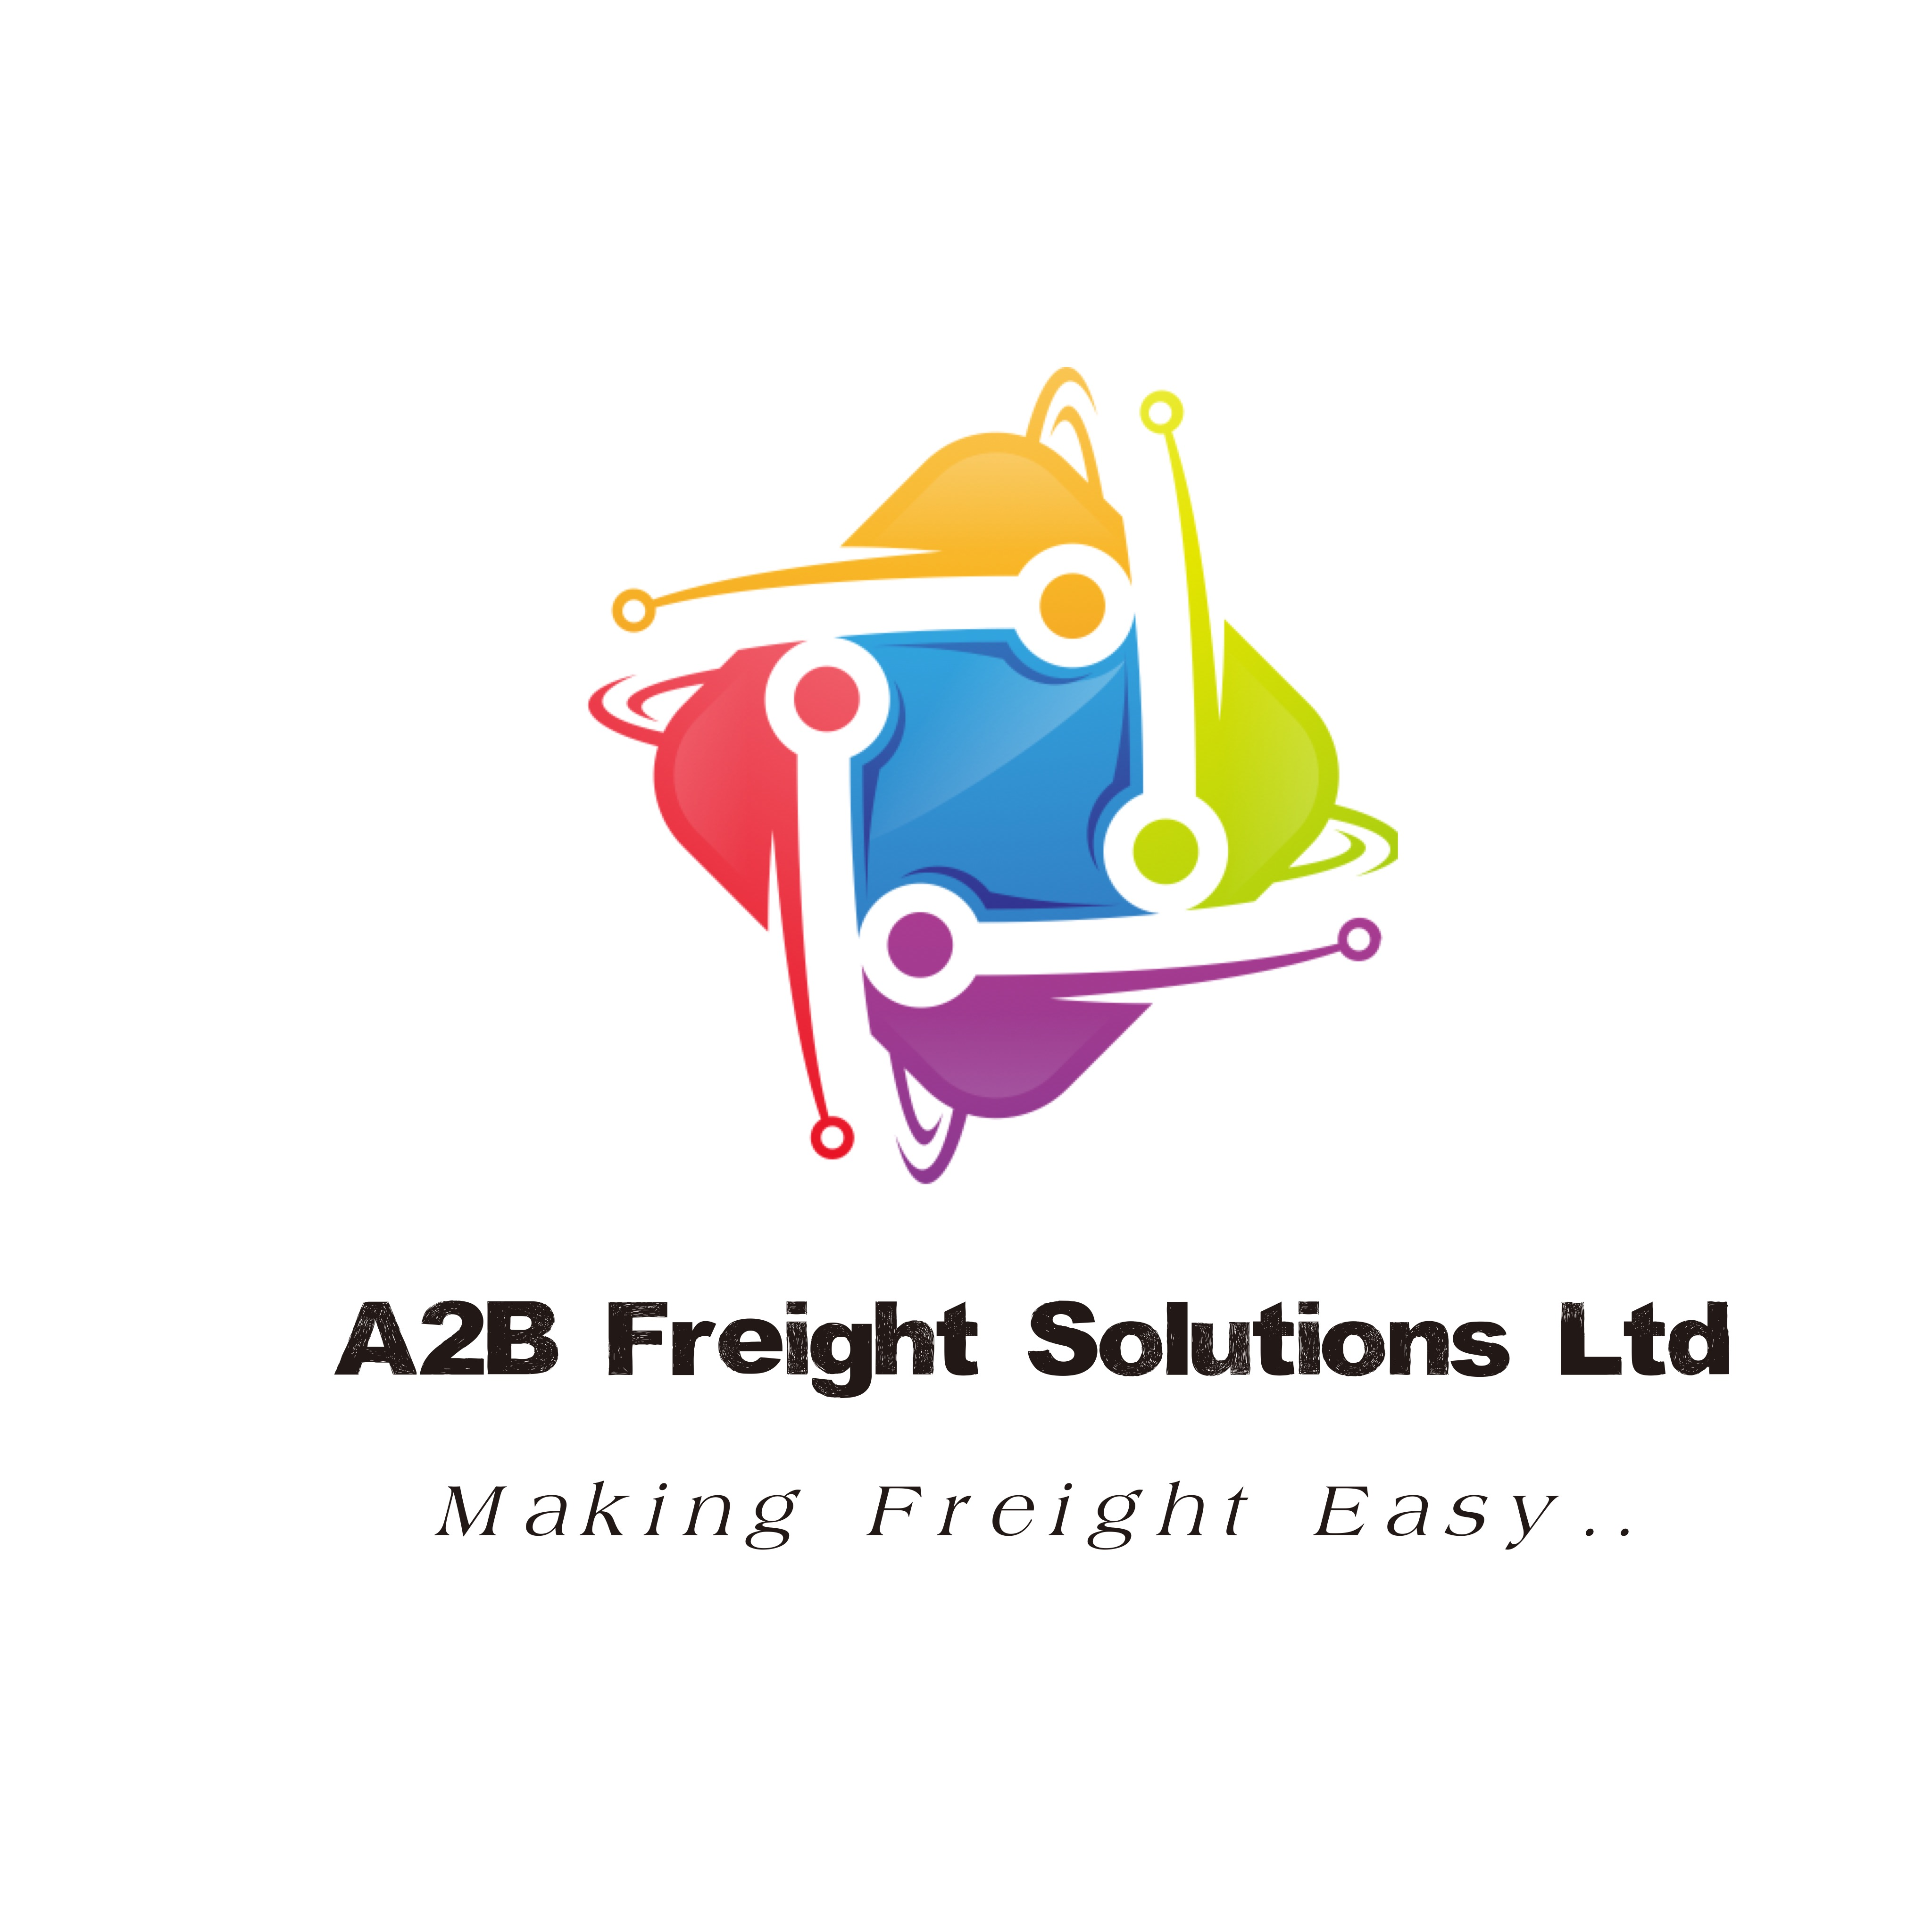 A2B Freight Solutions